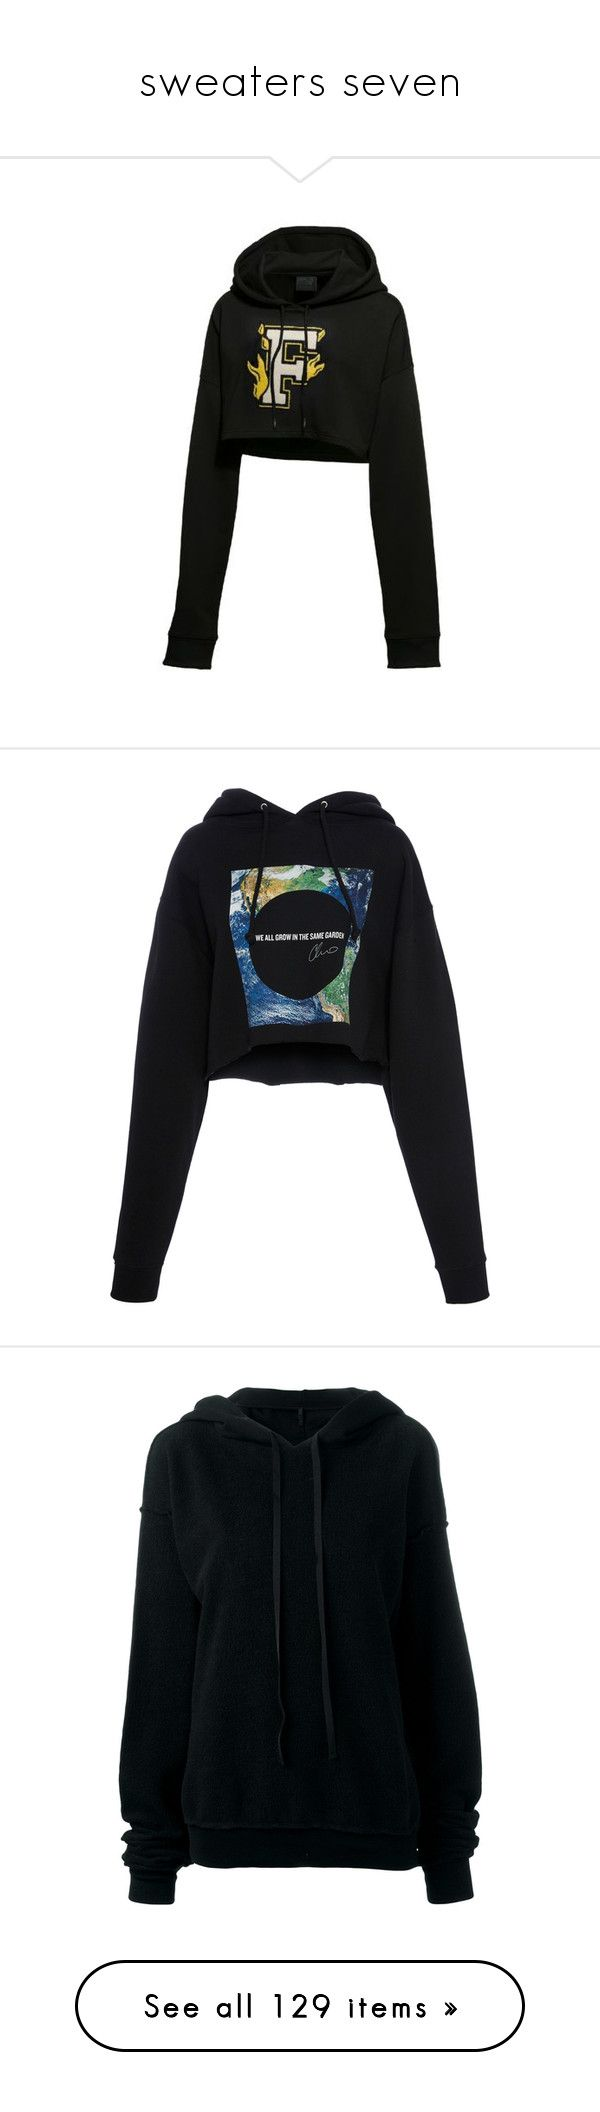 """""""sweaters seven"""" by gmbtch ❤ liked on Polyvore featuring tops, hoodies, sweatshirts, hooded top, cropped sweatshirt, hooded crop top, cropped hooded sweatshirt, puma top, black and hoodie top"""